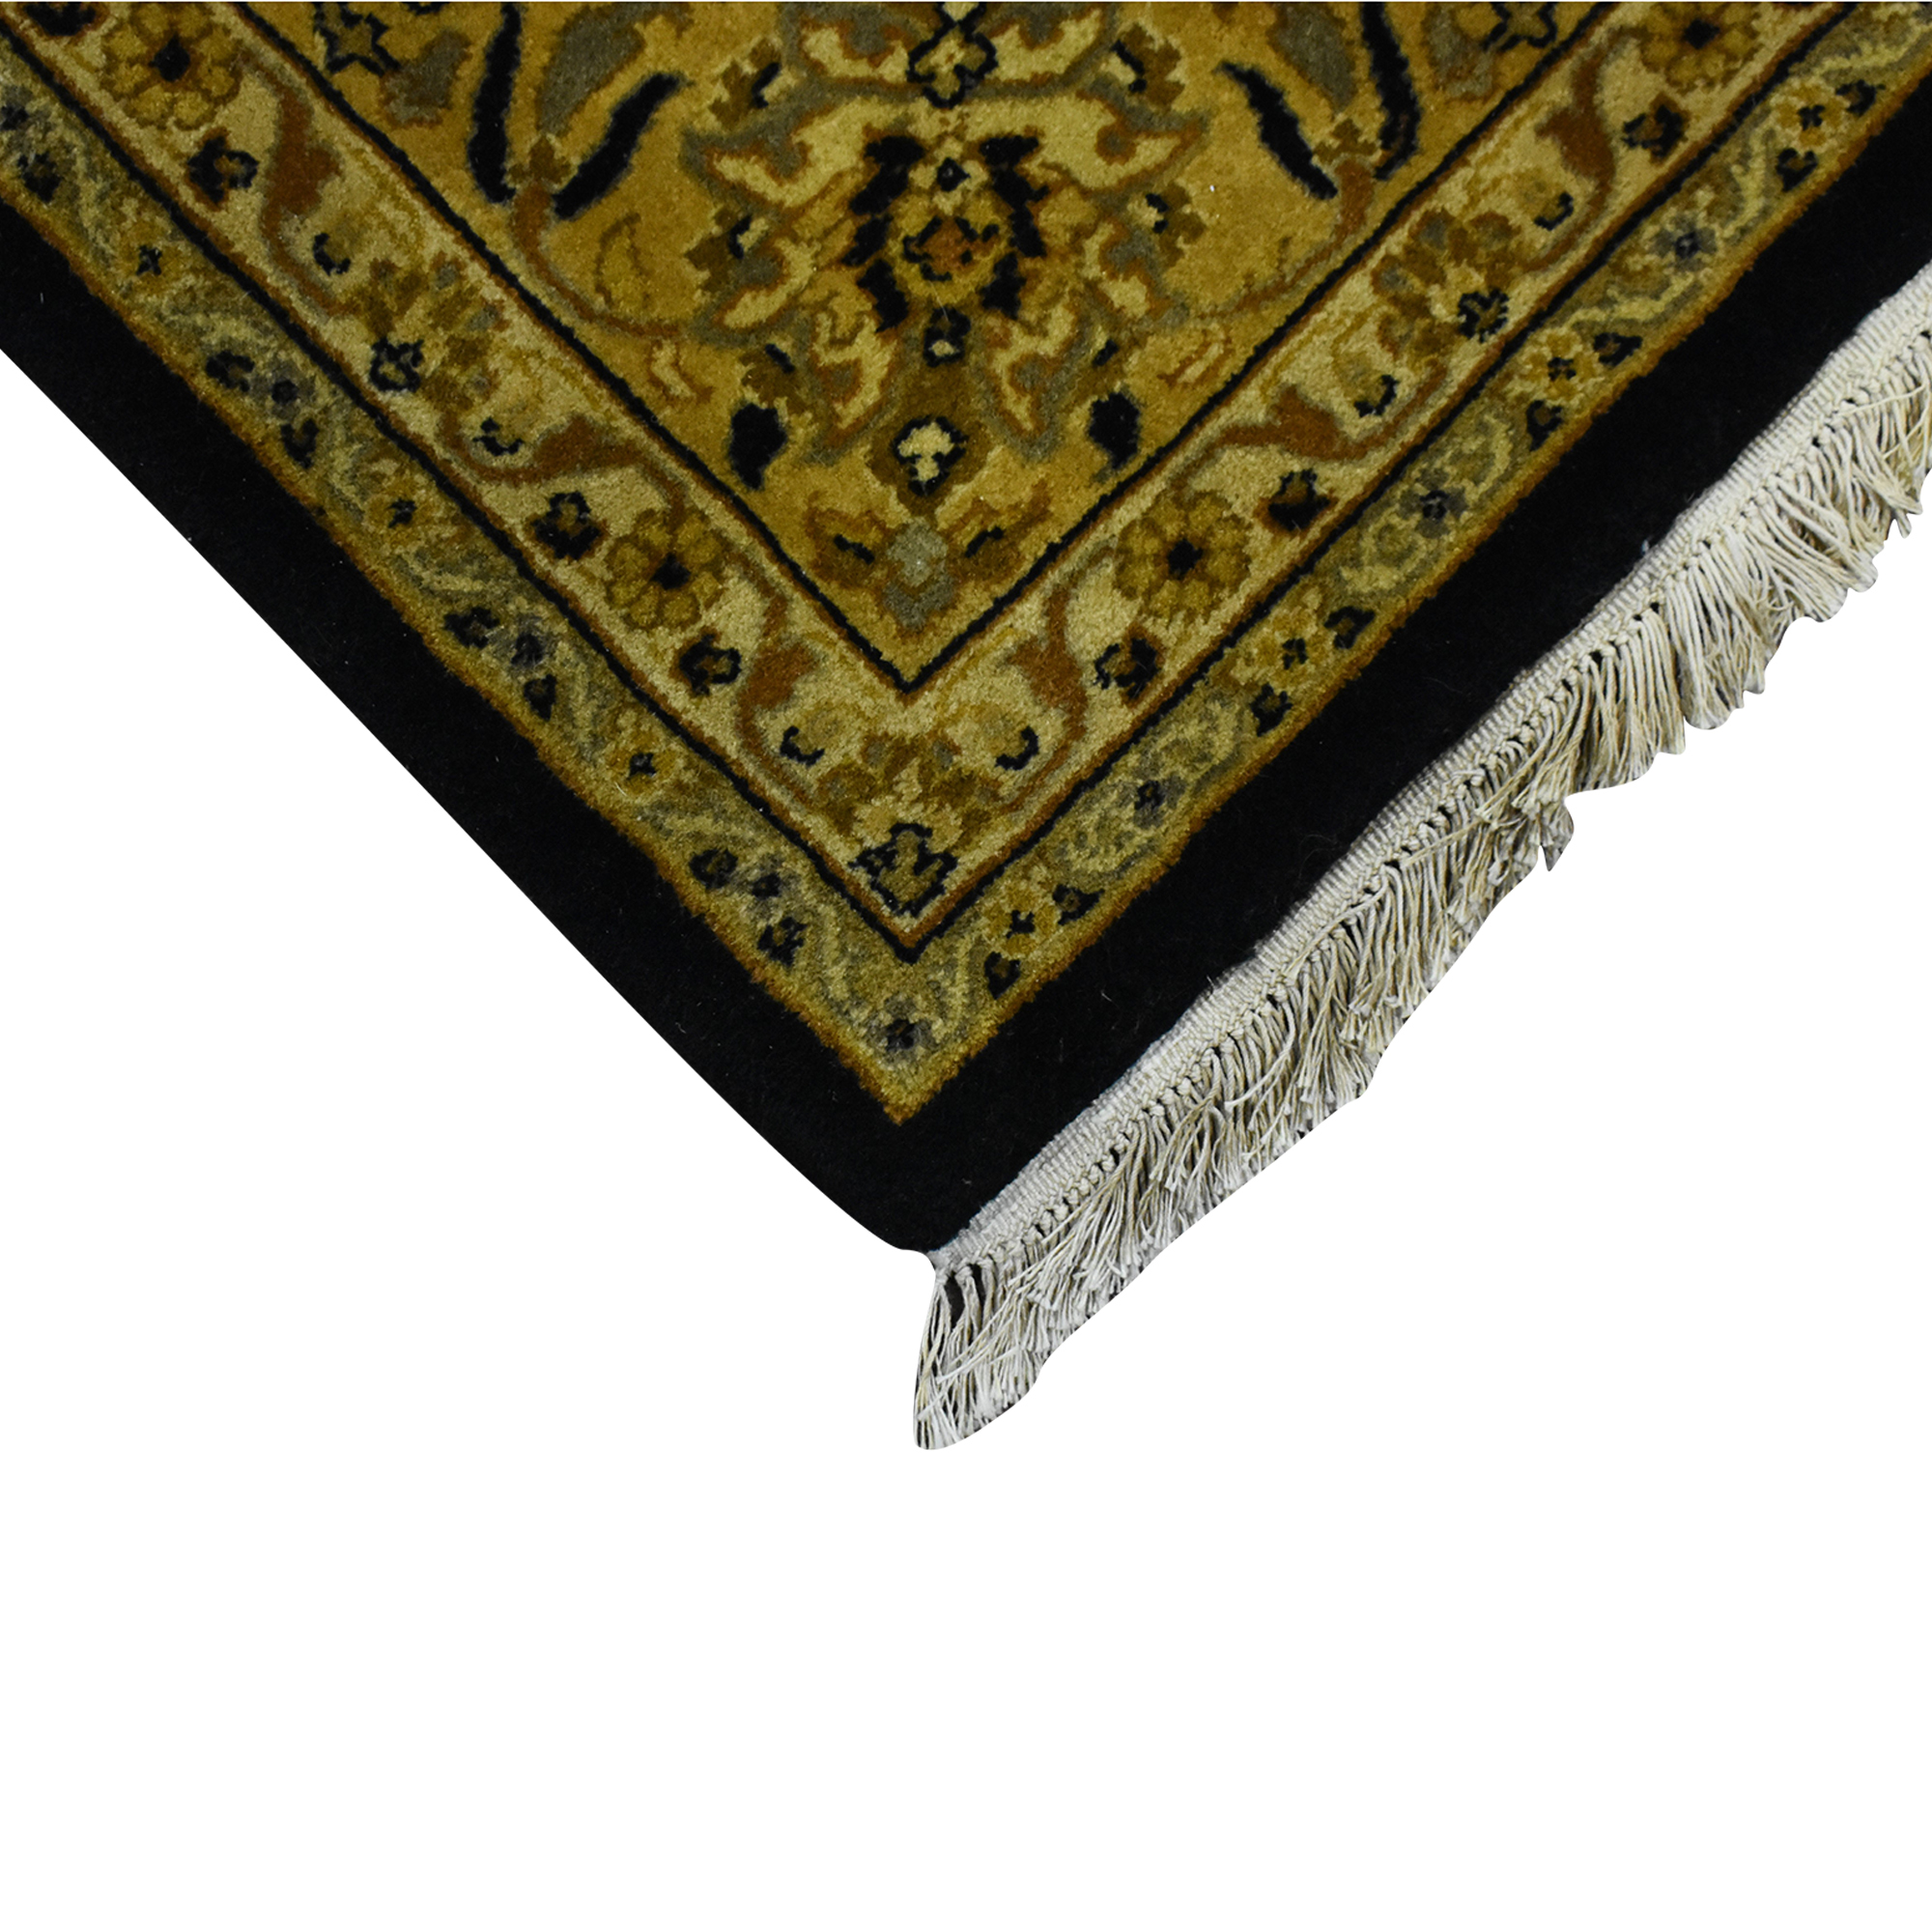 Patterned Area Rug yellow and black